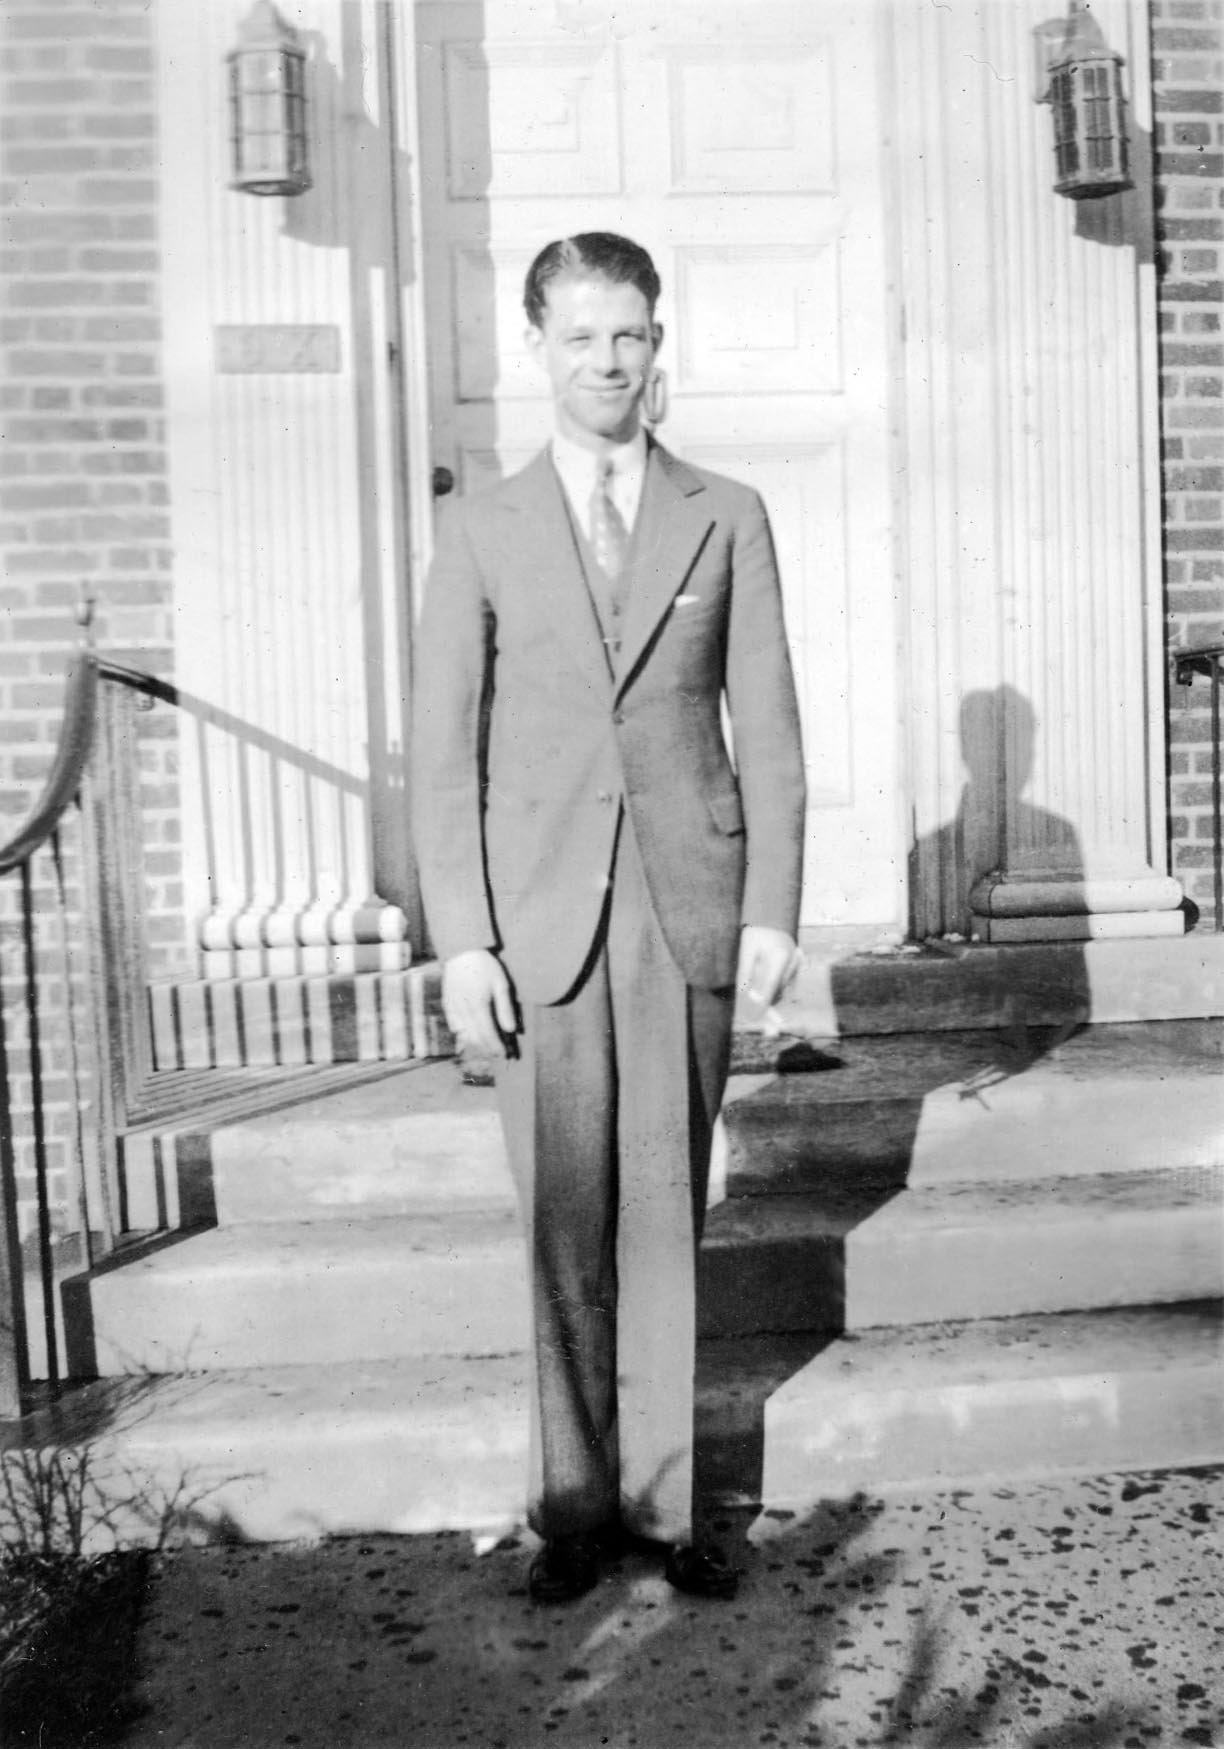 William Young Jr. 1939 - Imperial, PA